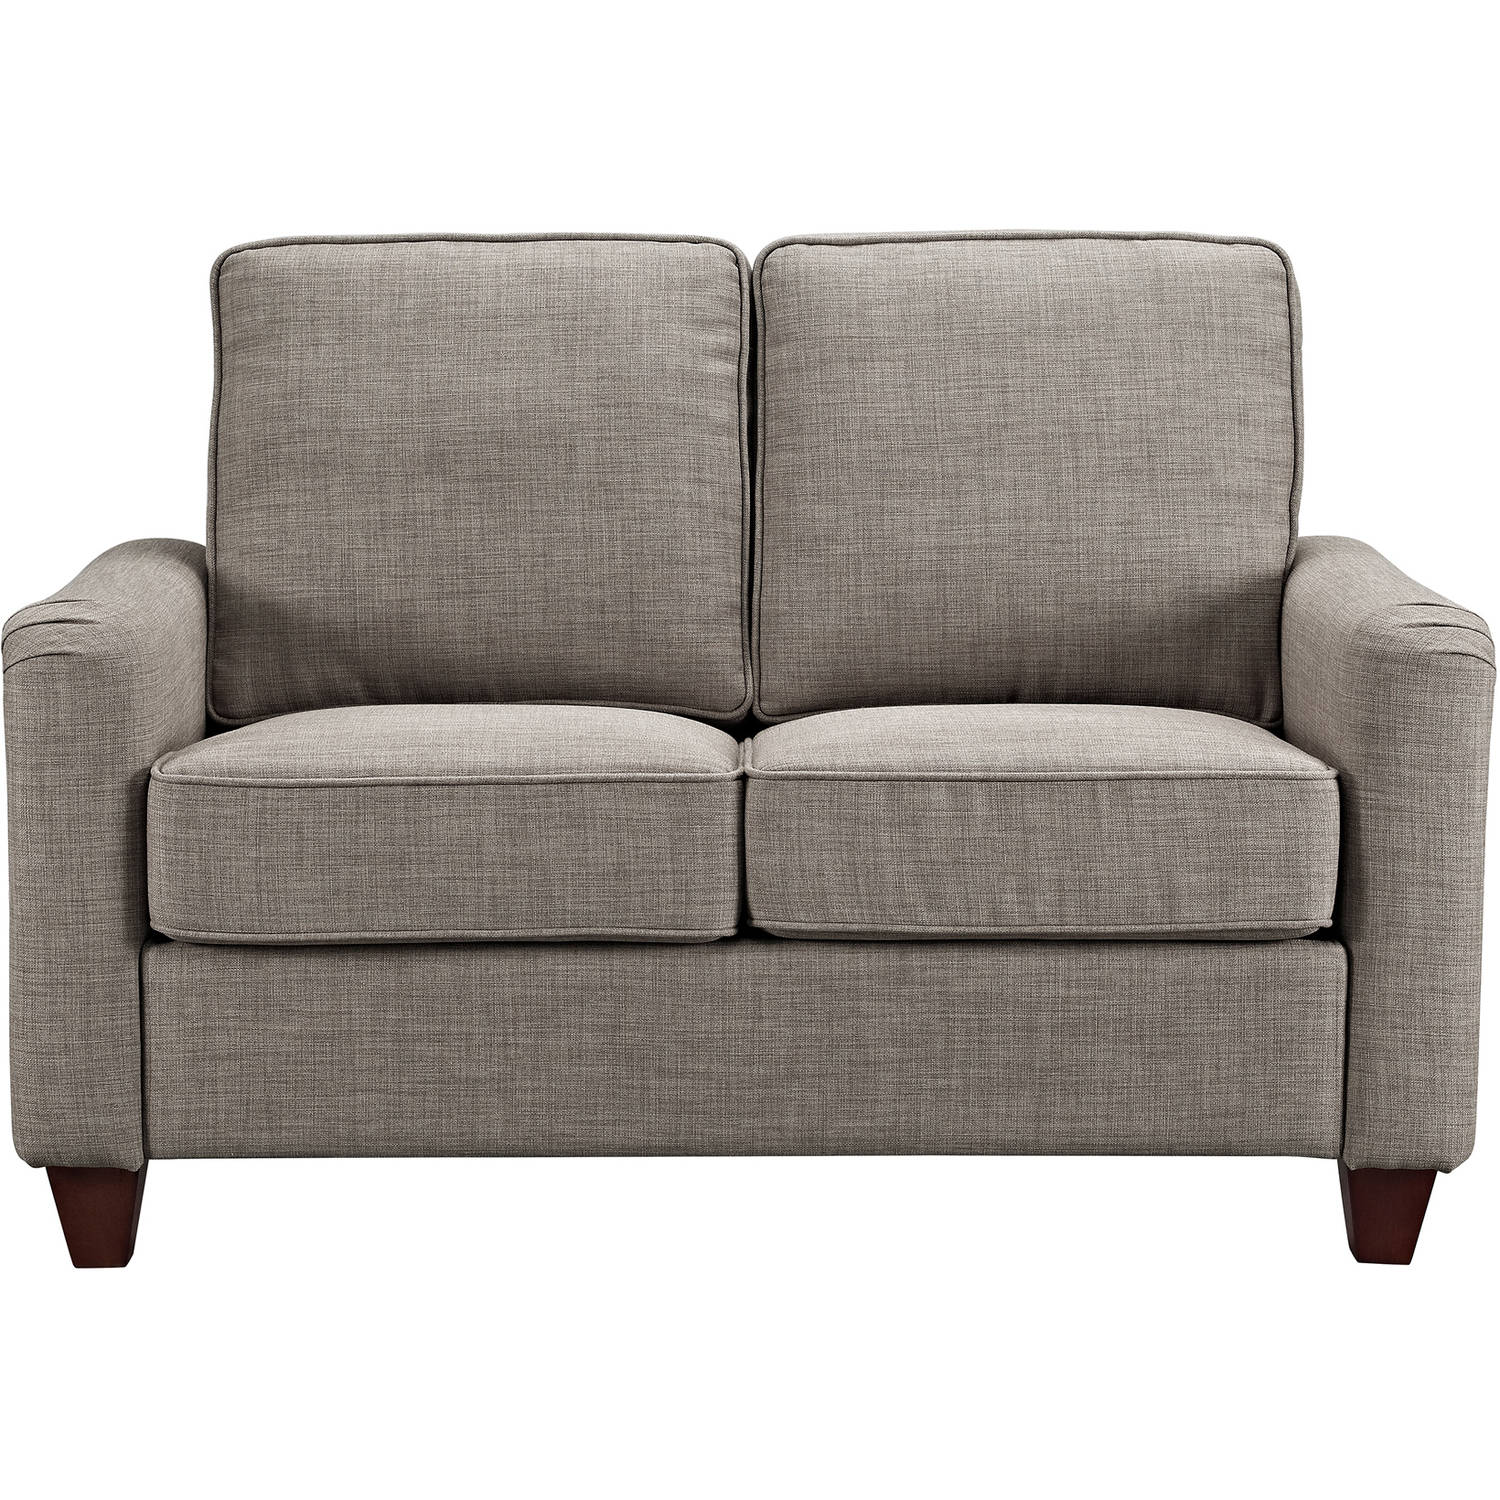 "Better Homes and Gardens 52"" Grayson Loveseat with Nailheads, Grey"